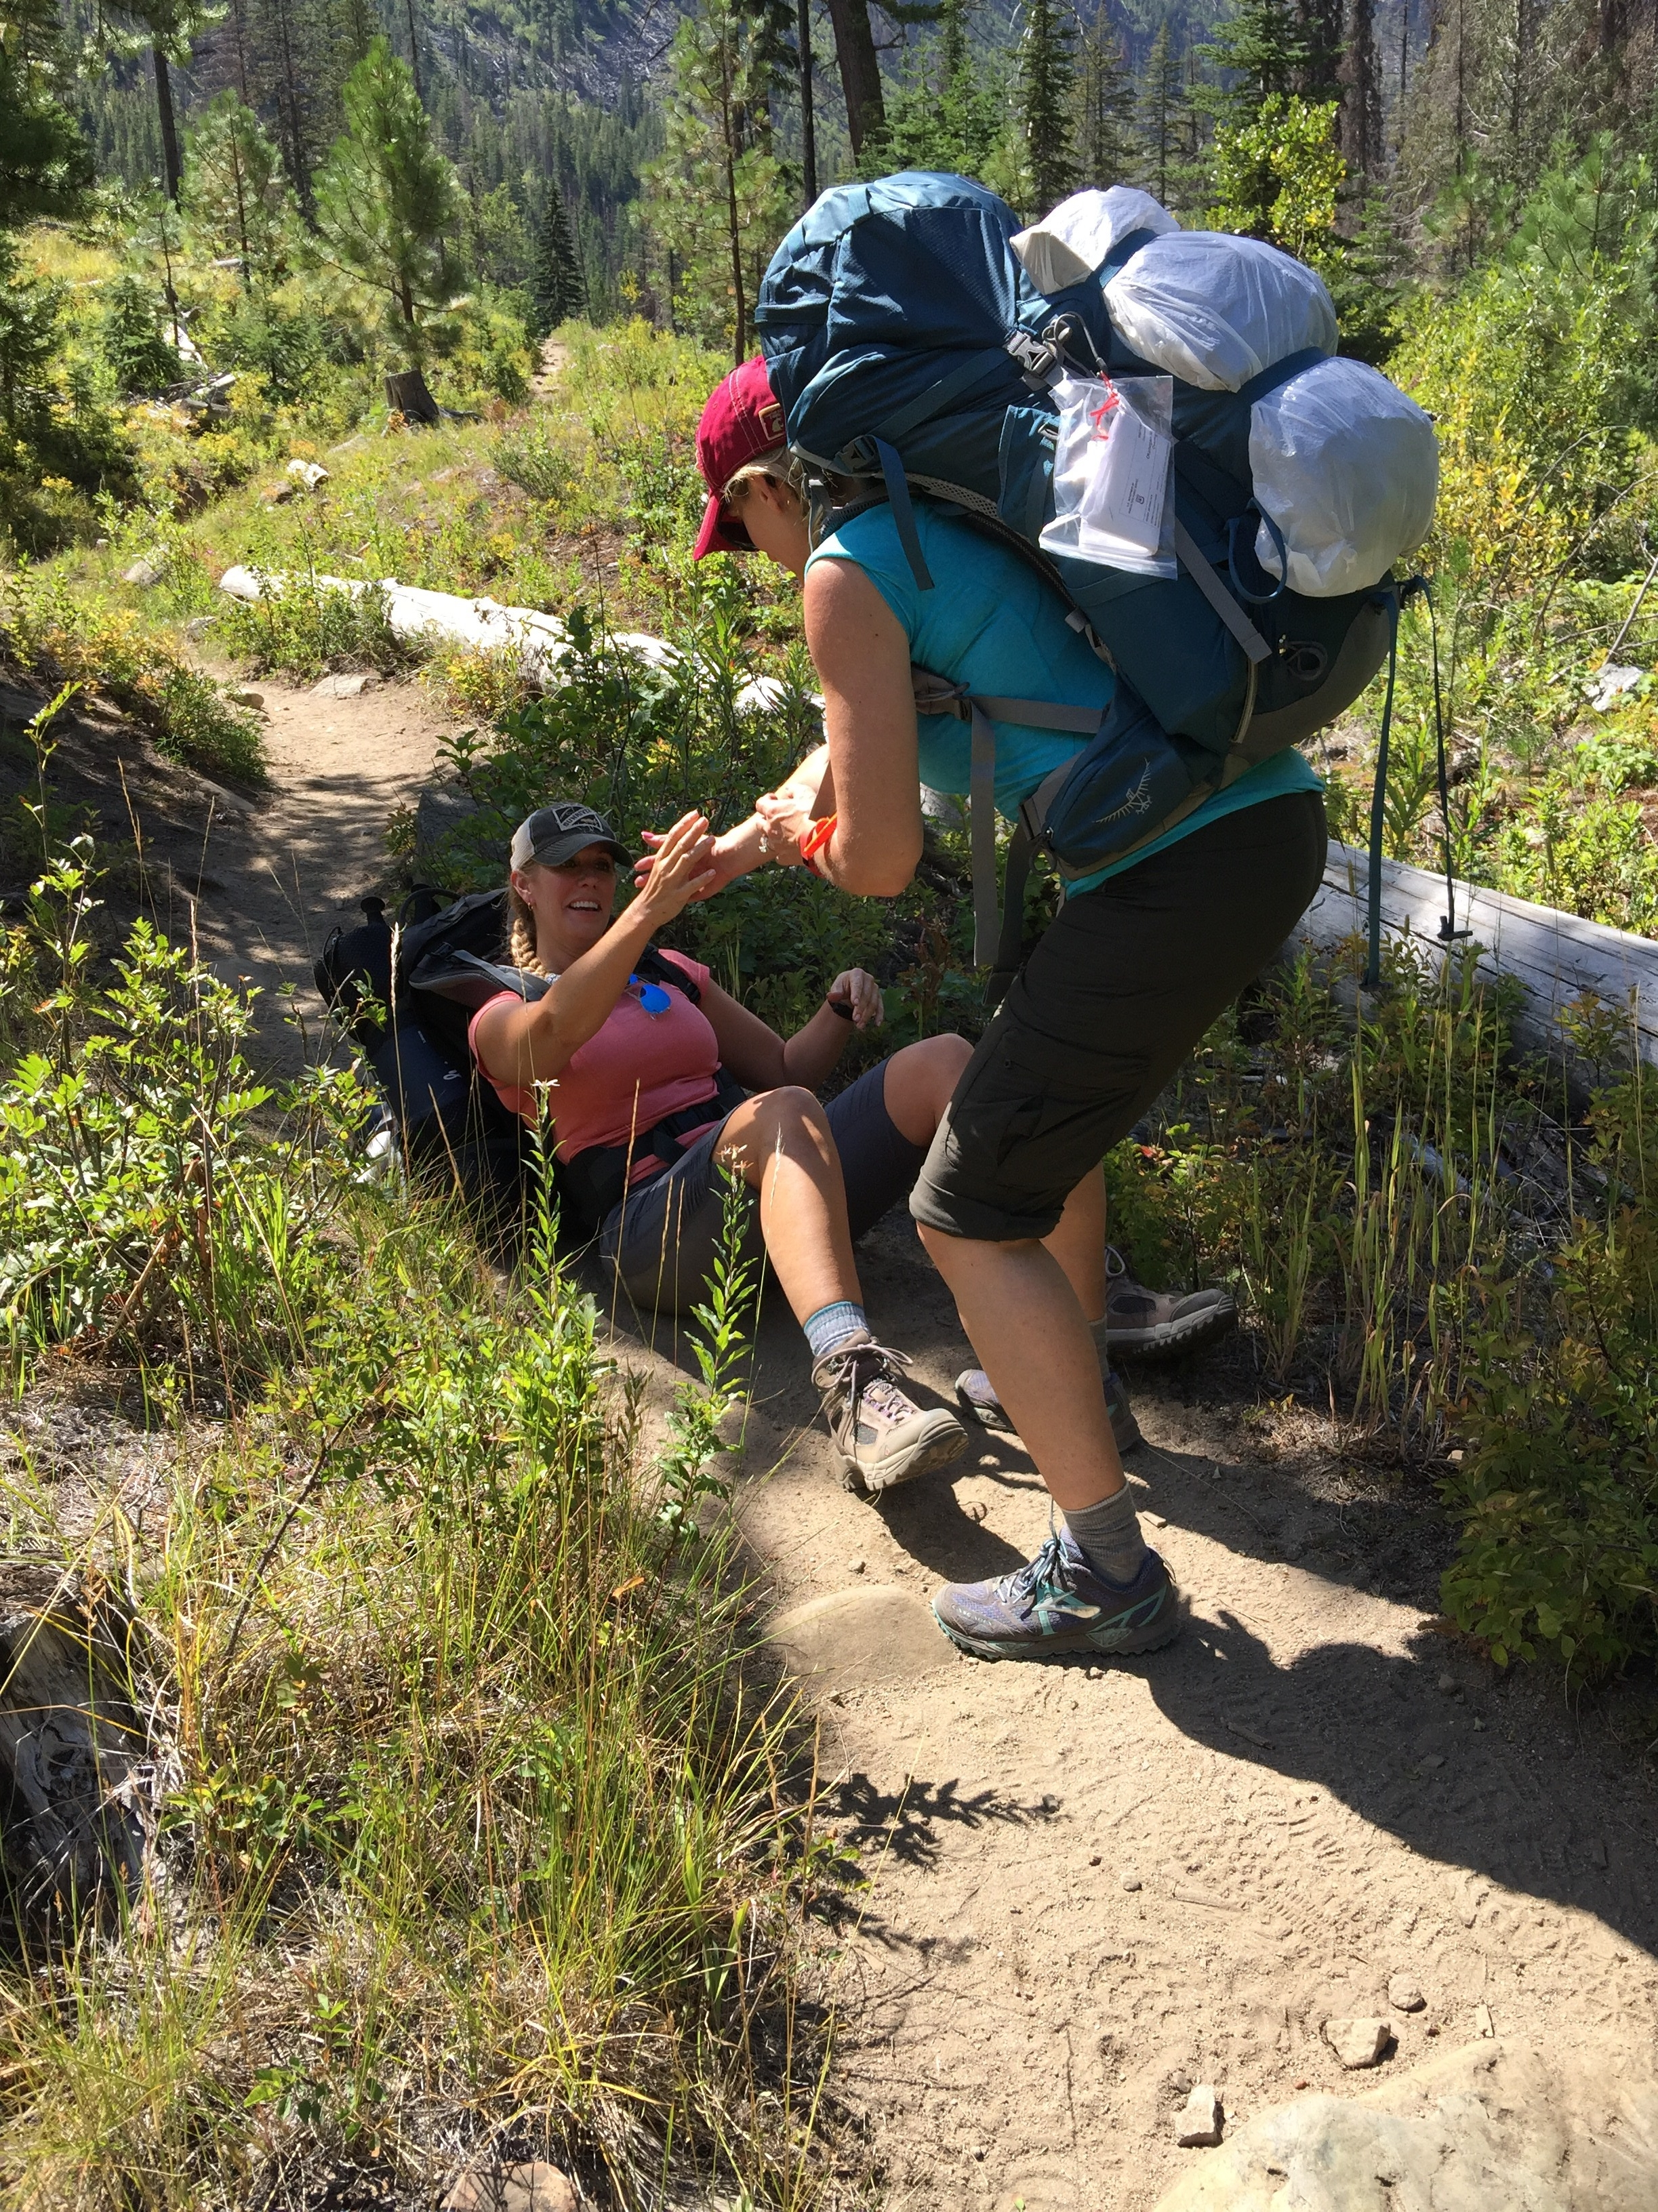 Girl falling on hike and getting a helping hand up